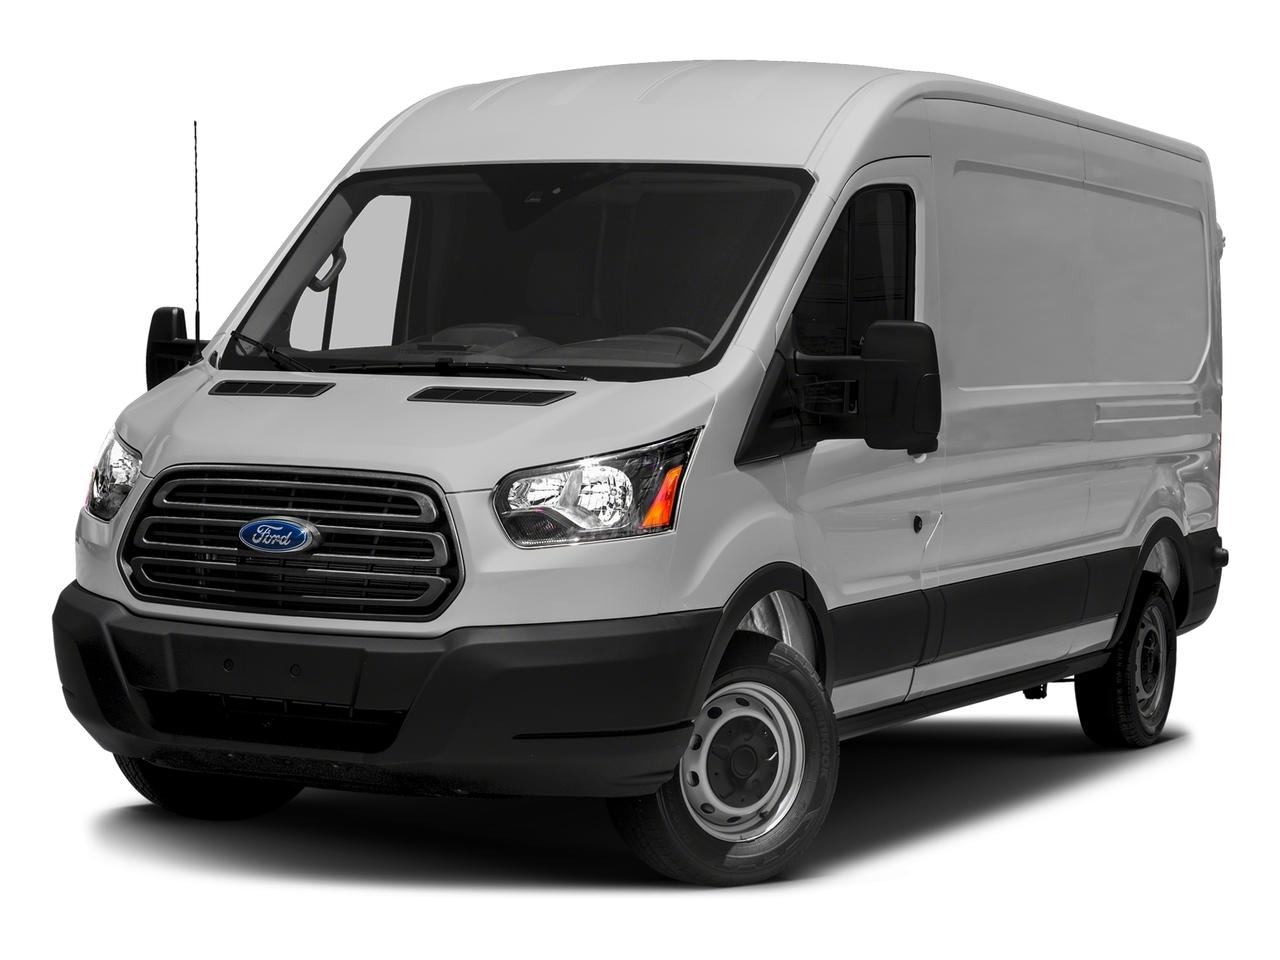 2017 Ford Transit Van Vehicle Photo in Bradenton, FL 34207